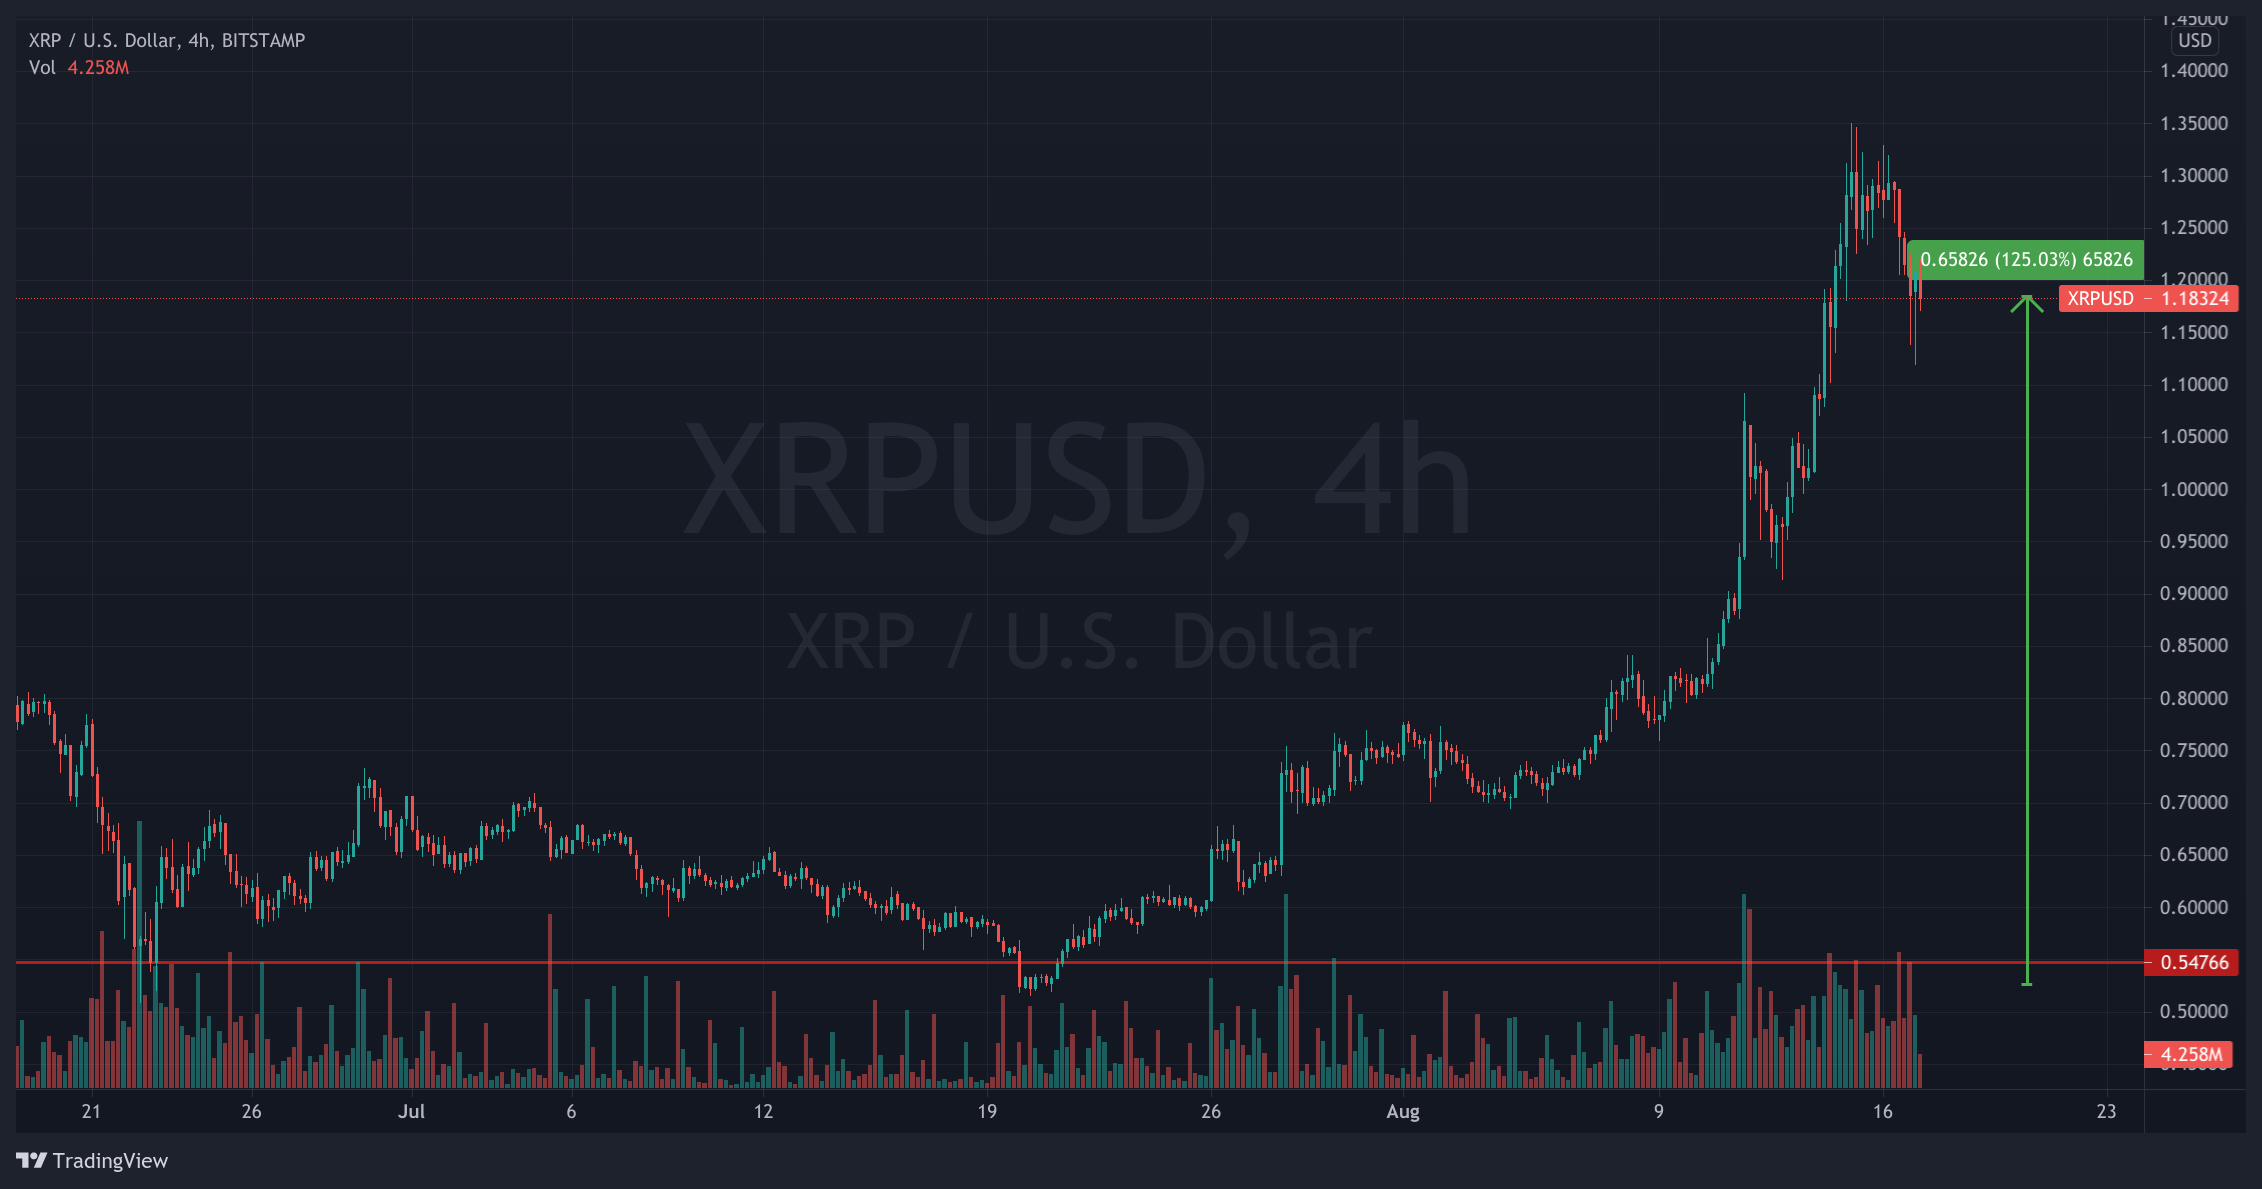 XRP/USD 4-hours chart, showing XRP price boom